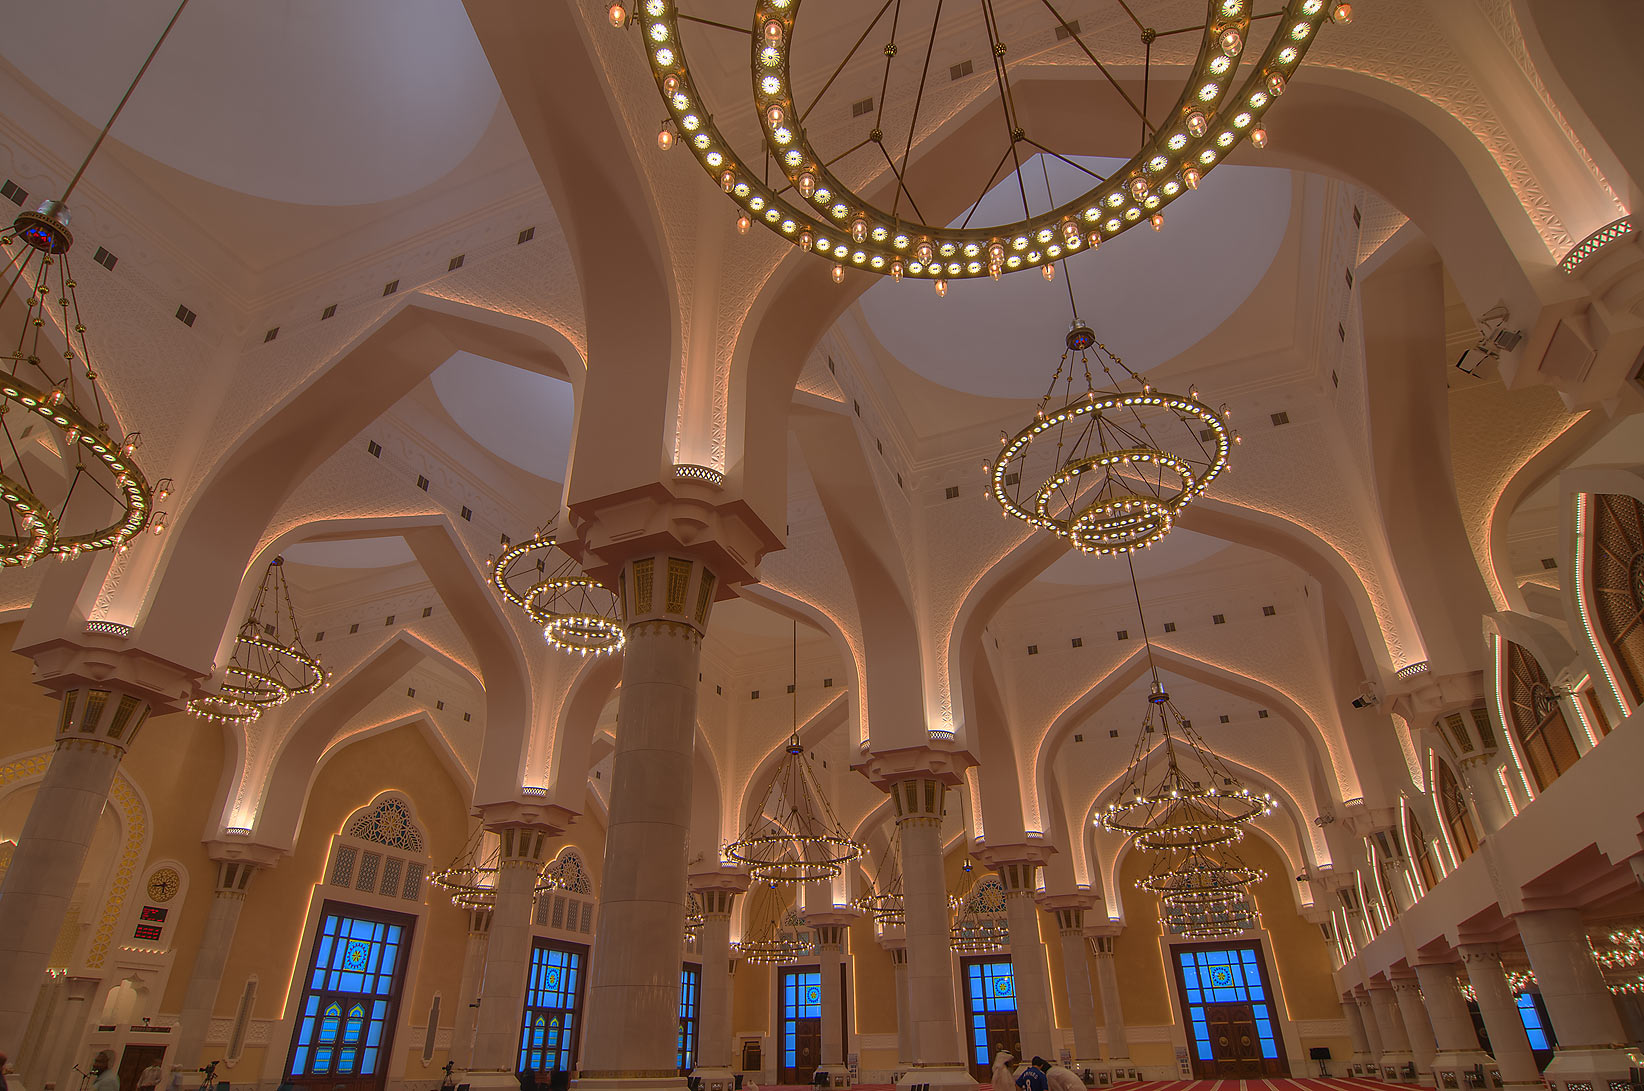 Vaults and columns in prayer hall (musallah) in...Ibn Abdul Wahhab Mosque). Doha, Qatar